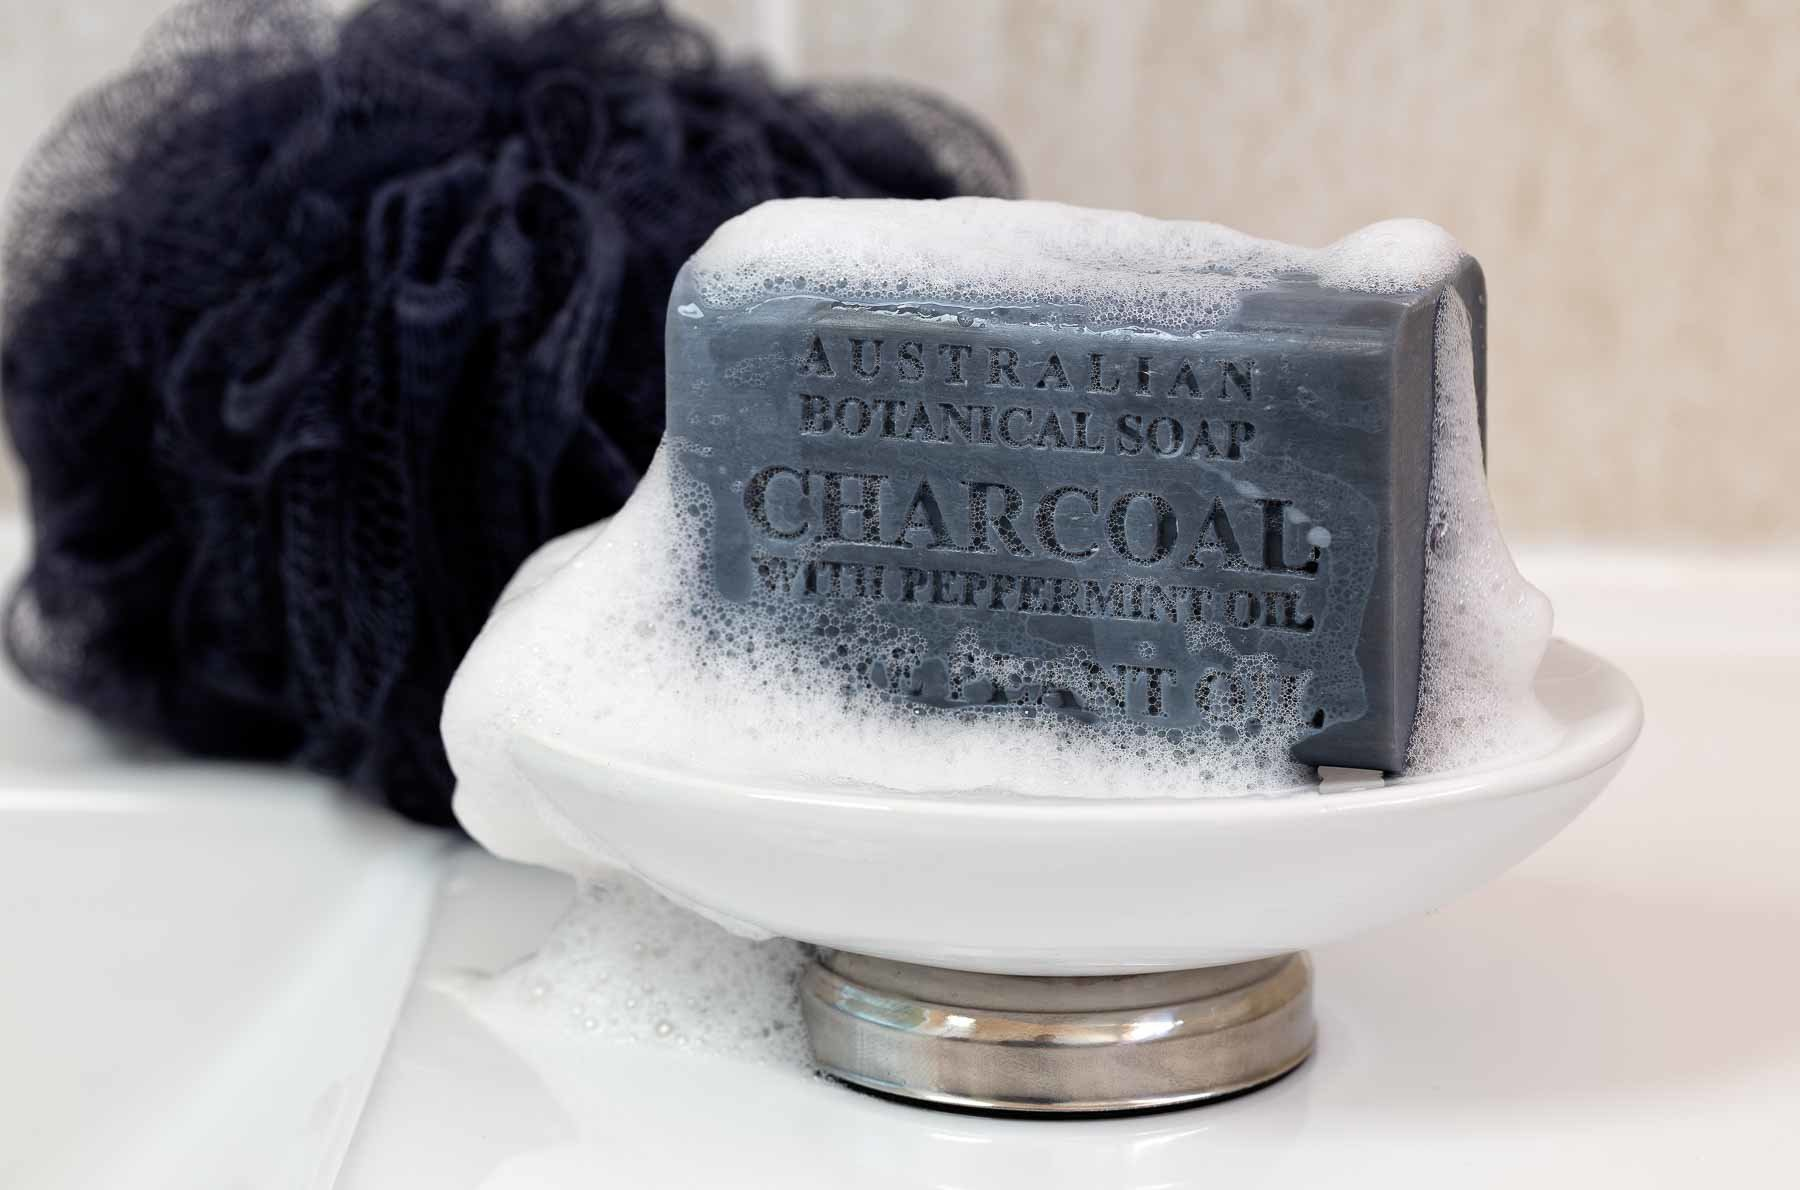 Australian Botanical Soap charcoal wet vertical over soap dish - Lifestyle advertising product photo